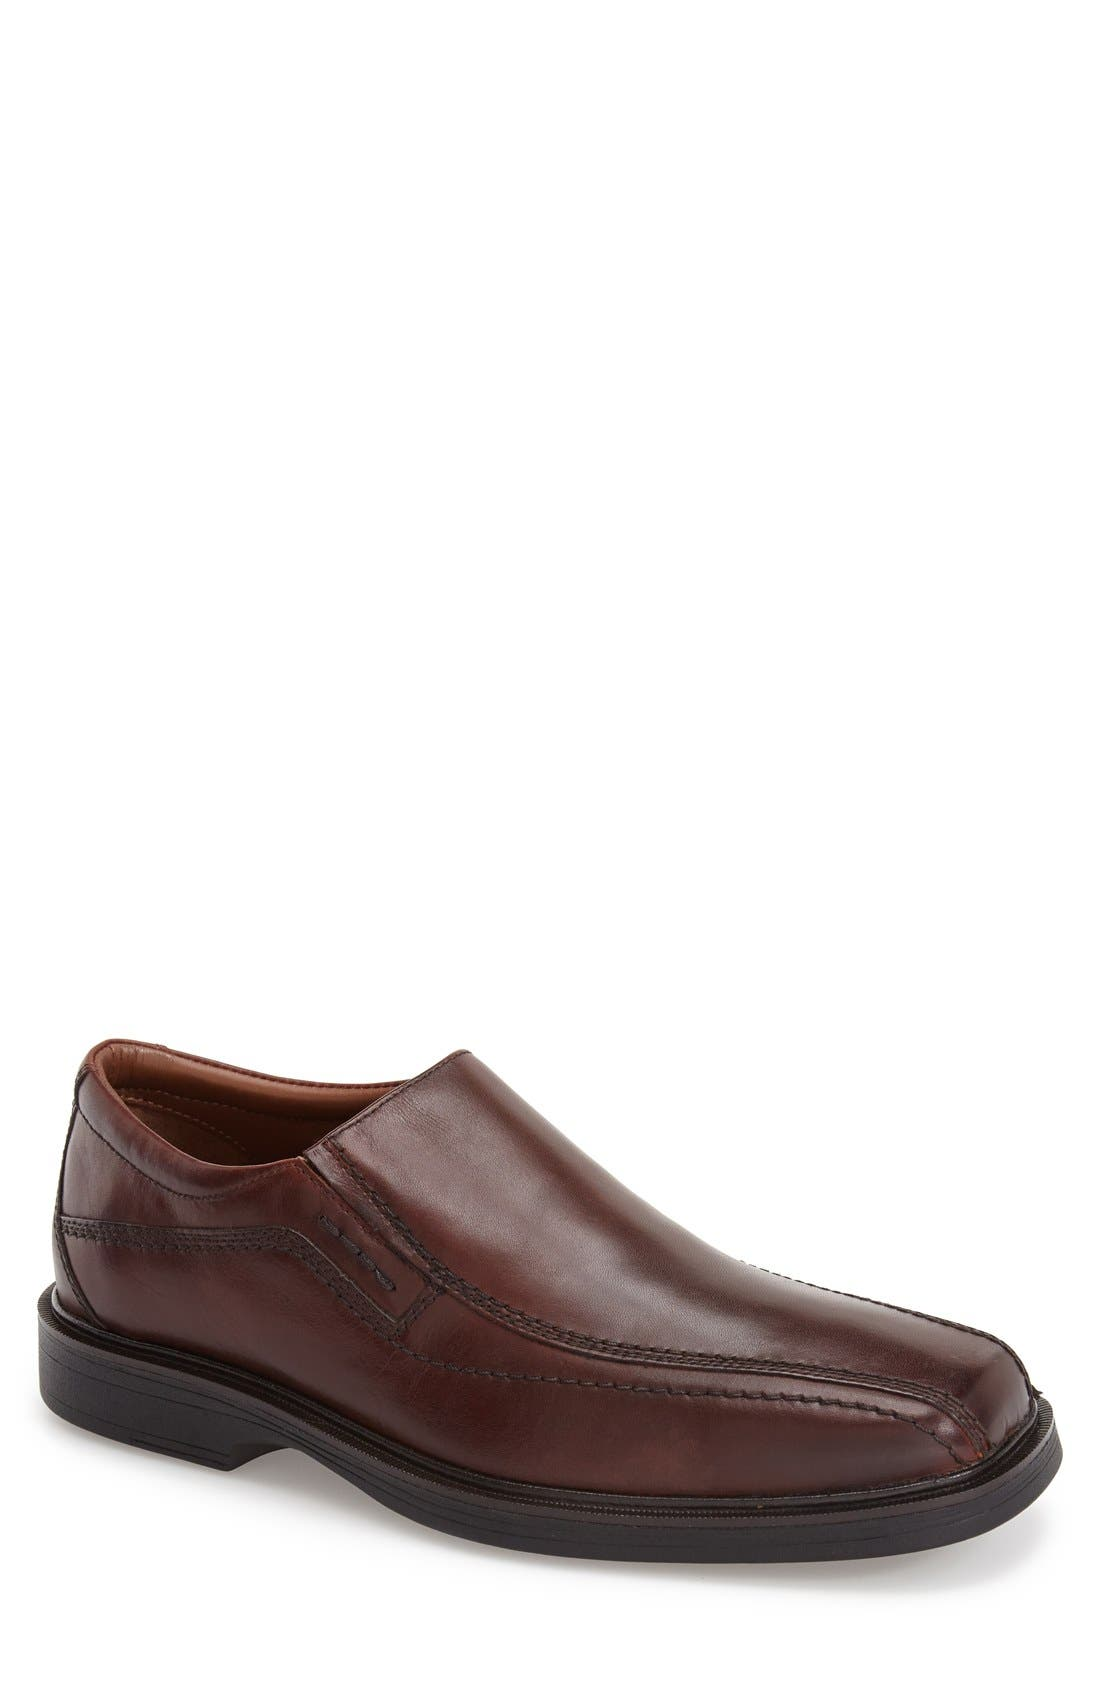 Johnston & Murphy 'Penn' Venetian Loafer (Men)